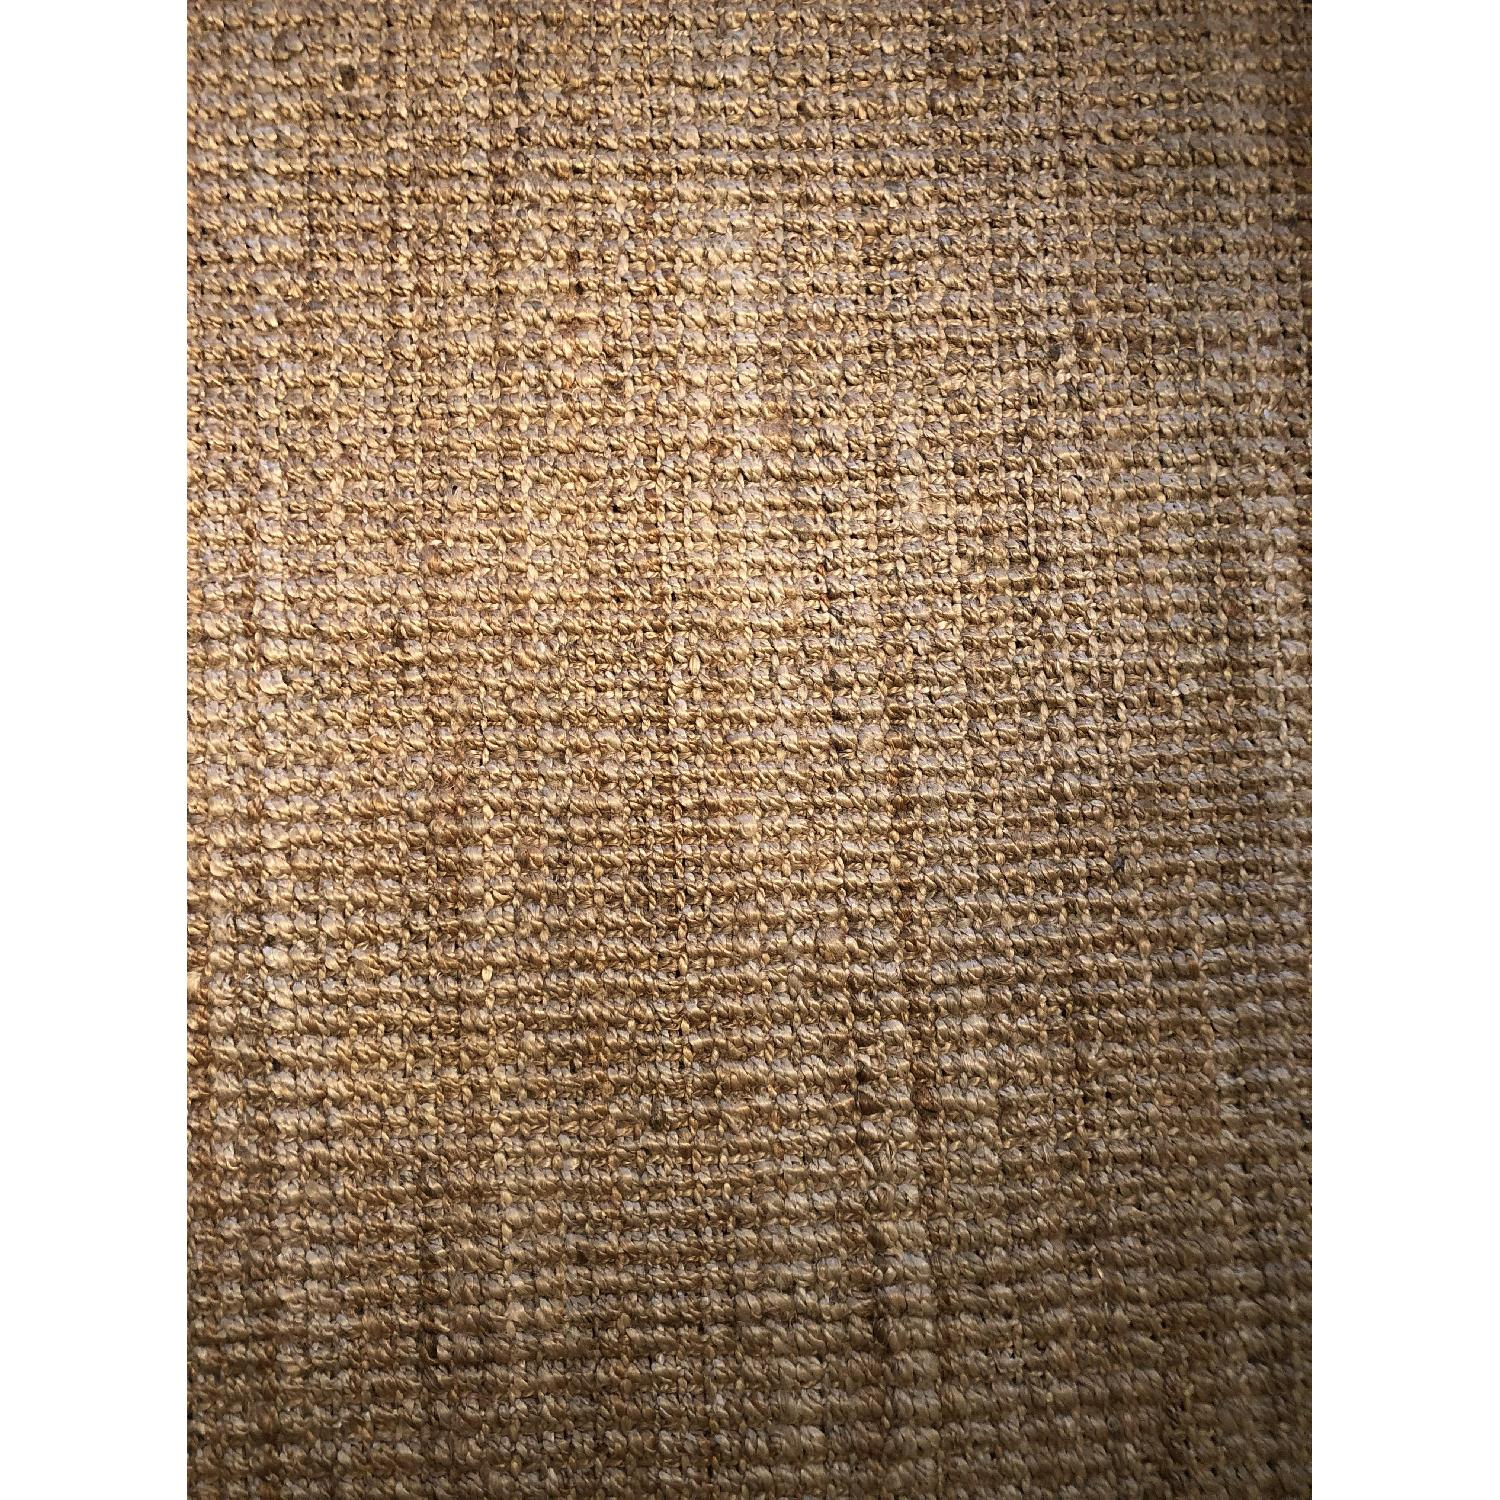 West Elm Jute Boucle Rug in Flax-3